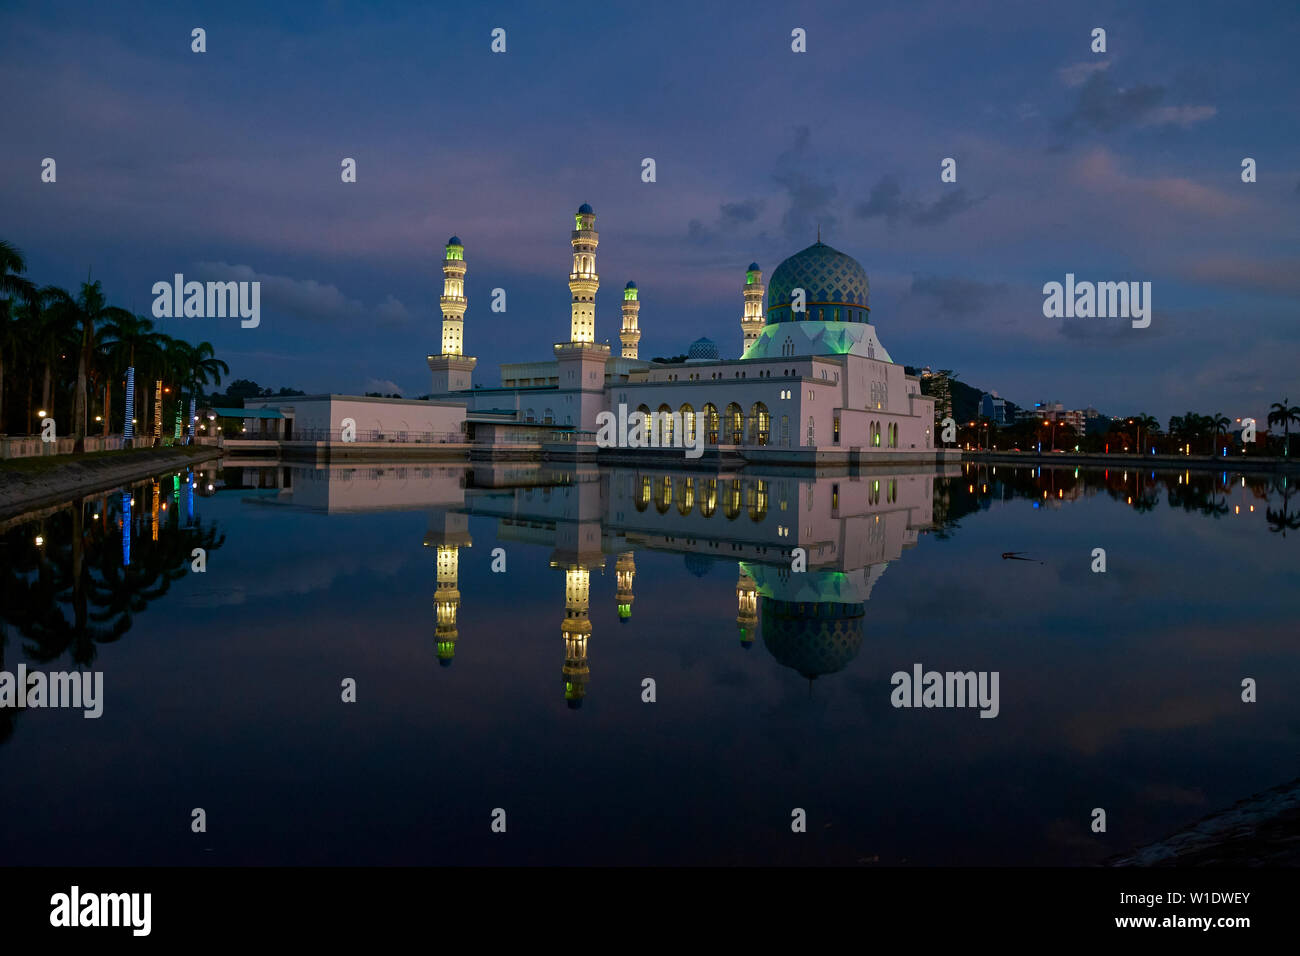 The Moorish style main city Mosque, Masjid Bandaraya, glowing at sunset in Kota Kinabalu, Borneo, Malaysia. - Stock Image